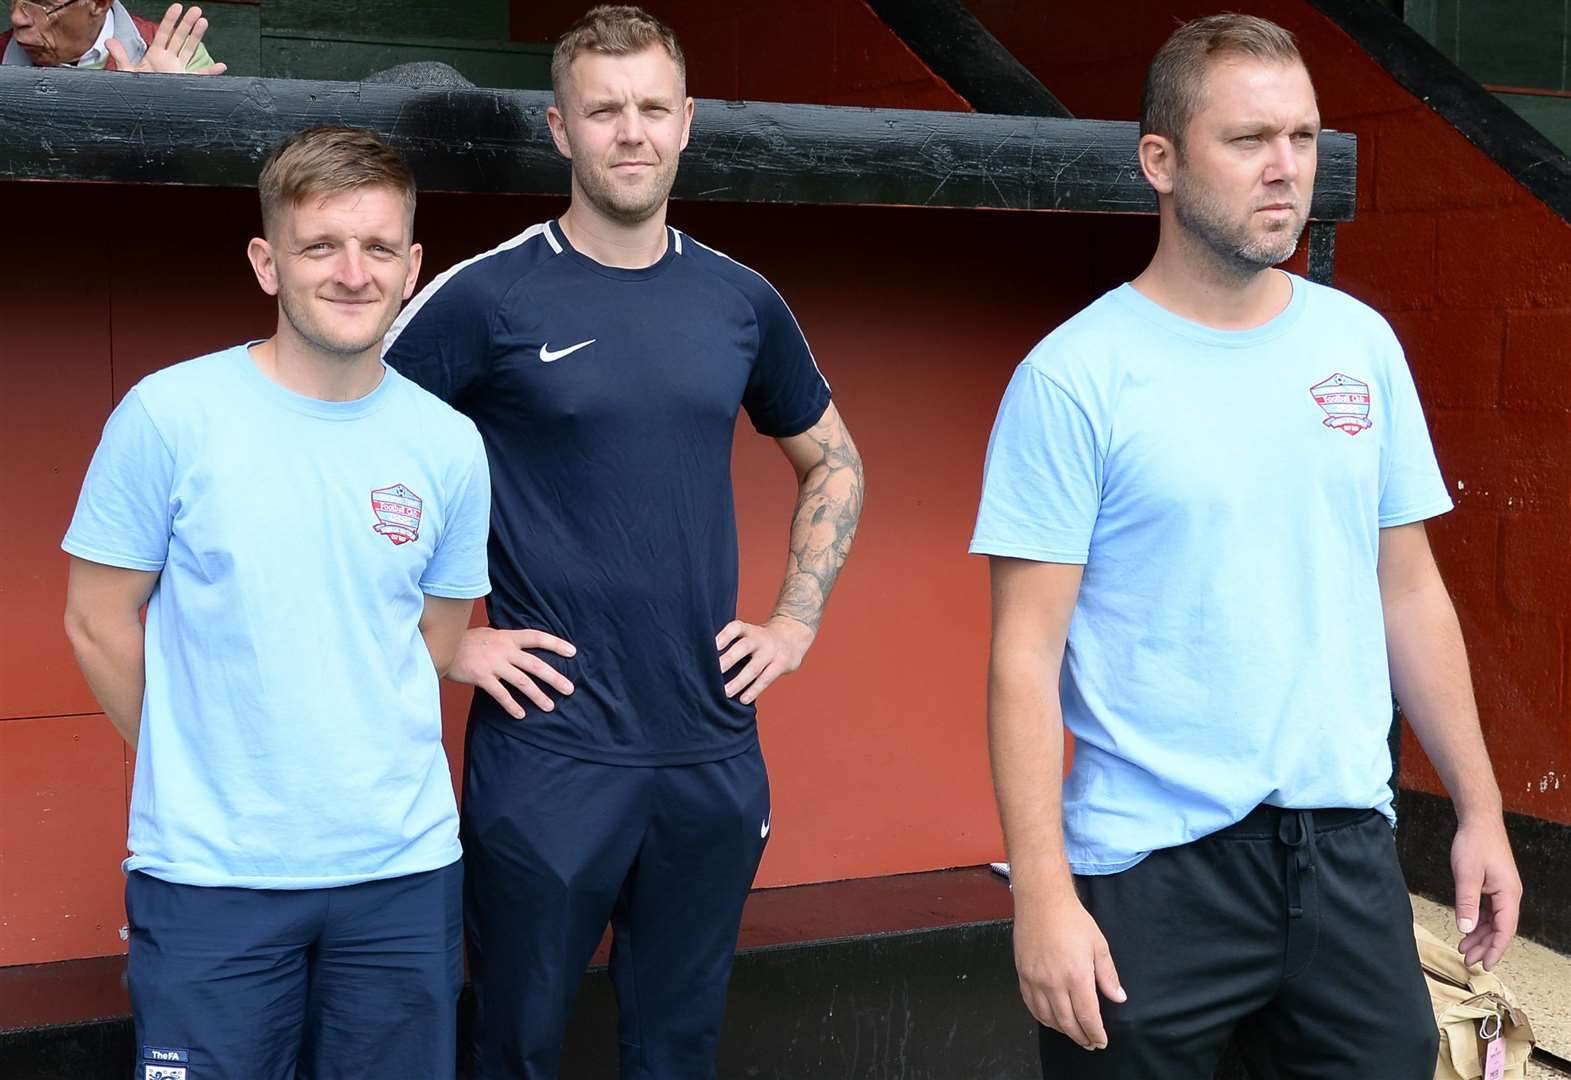 FOOTBALL: Questions for Bourne Town players over desire